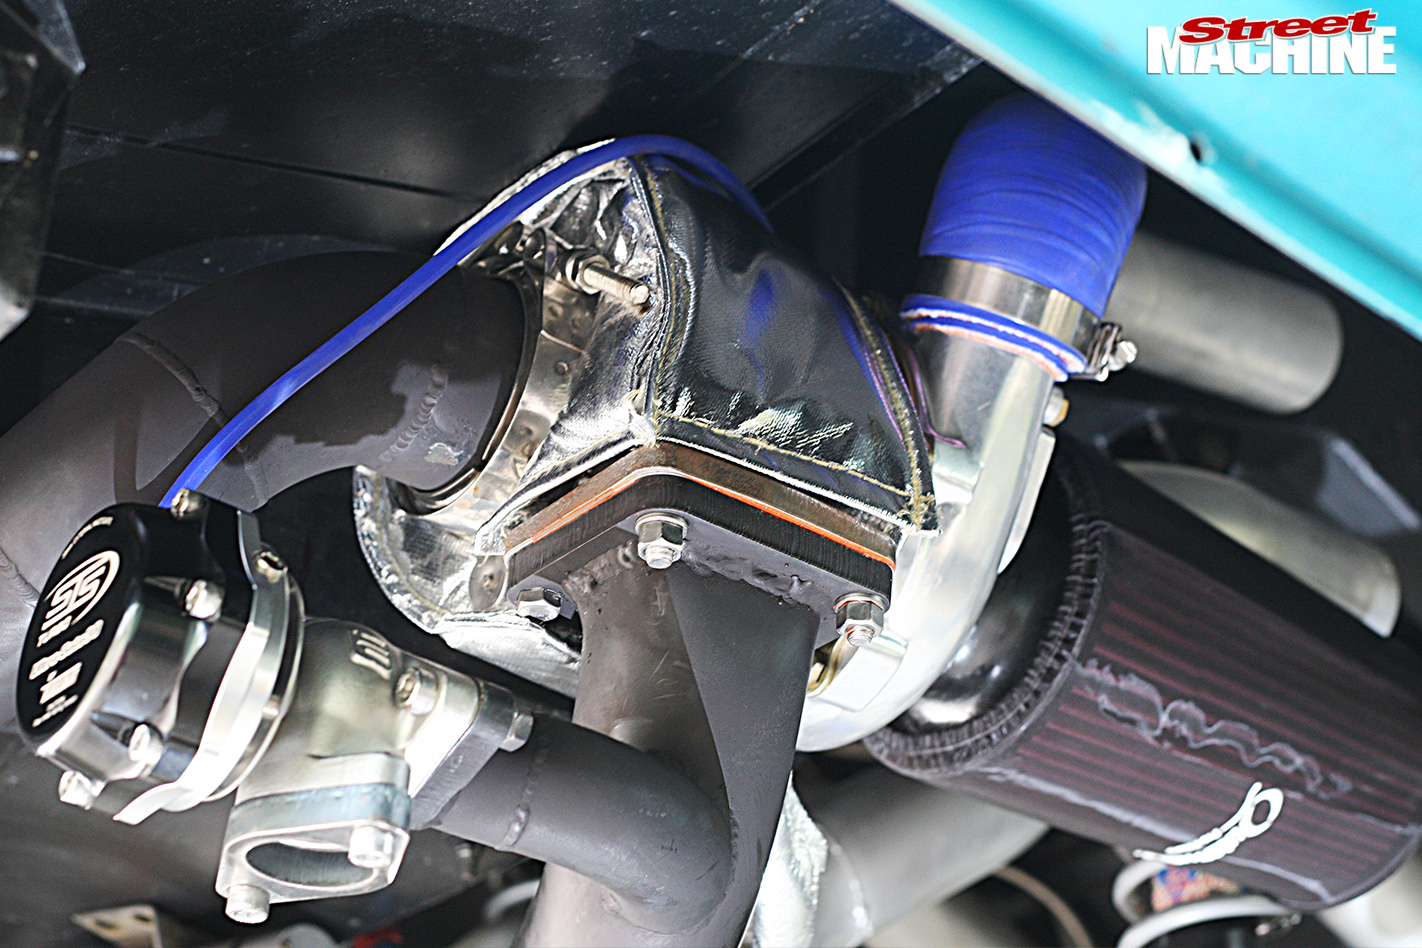 HOW TO INSTALL A REAR-MOUNTED TURBO SET-UP